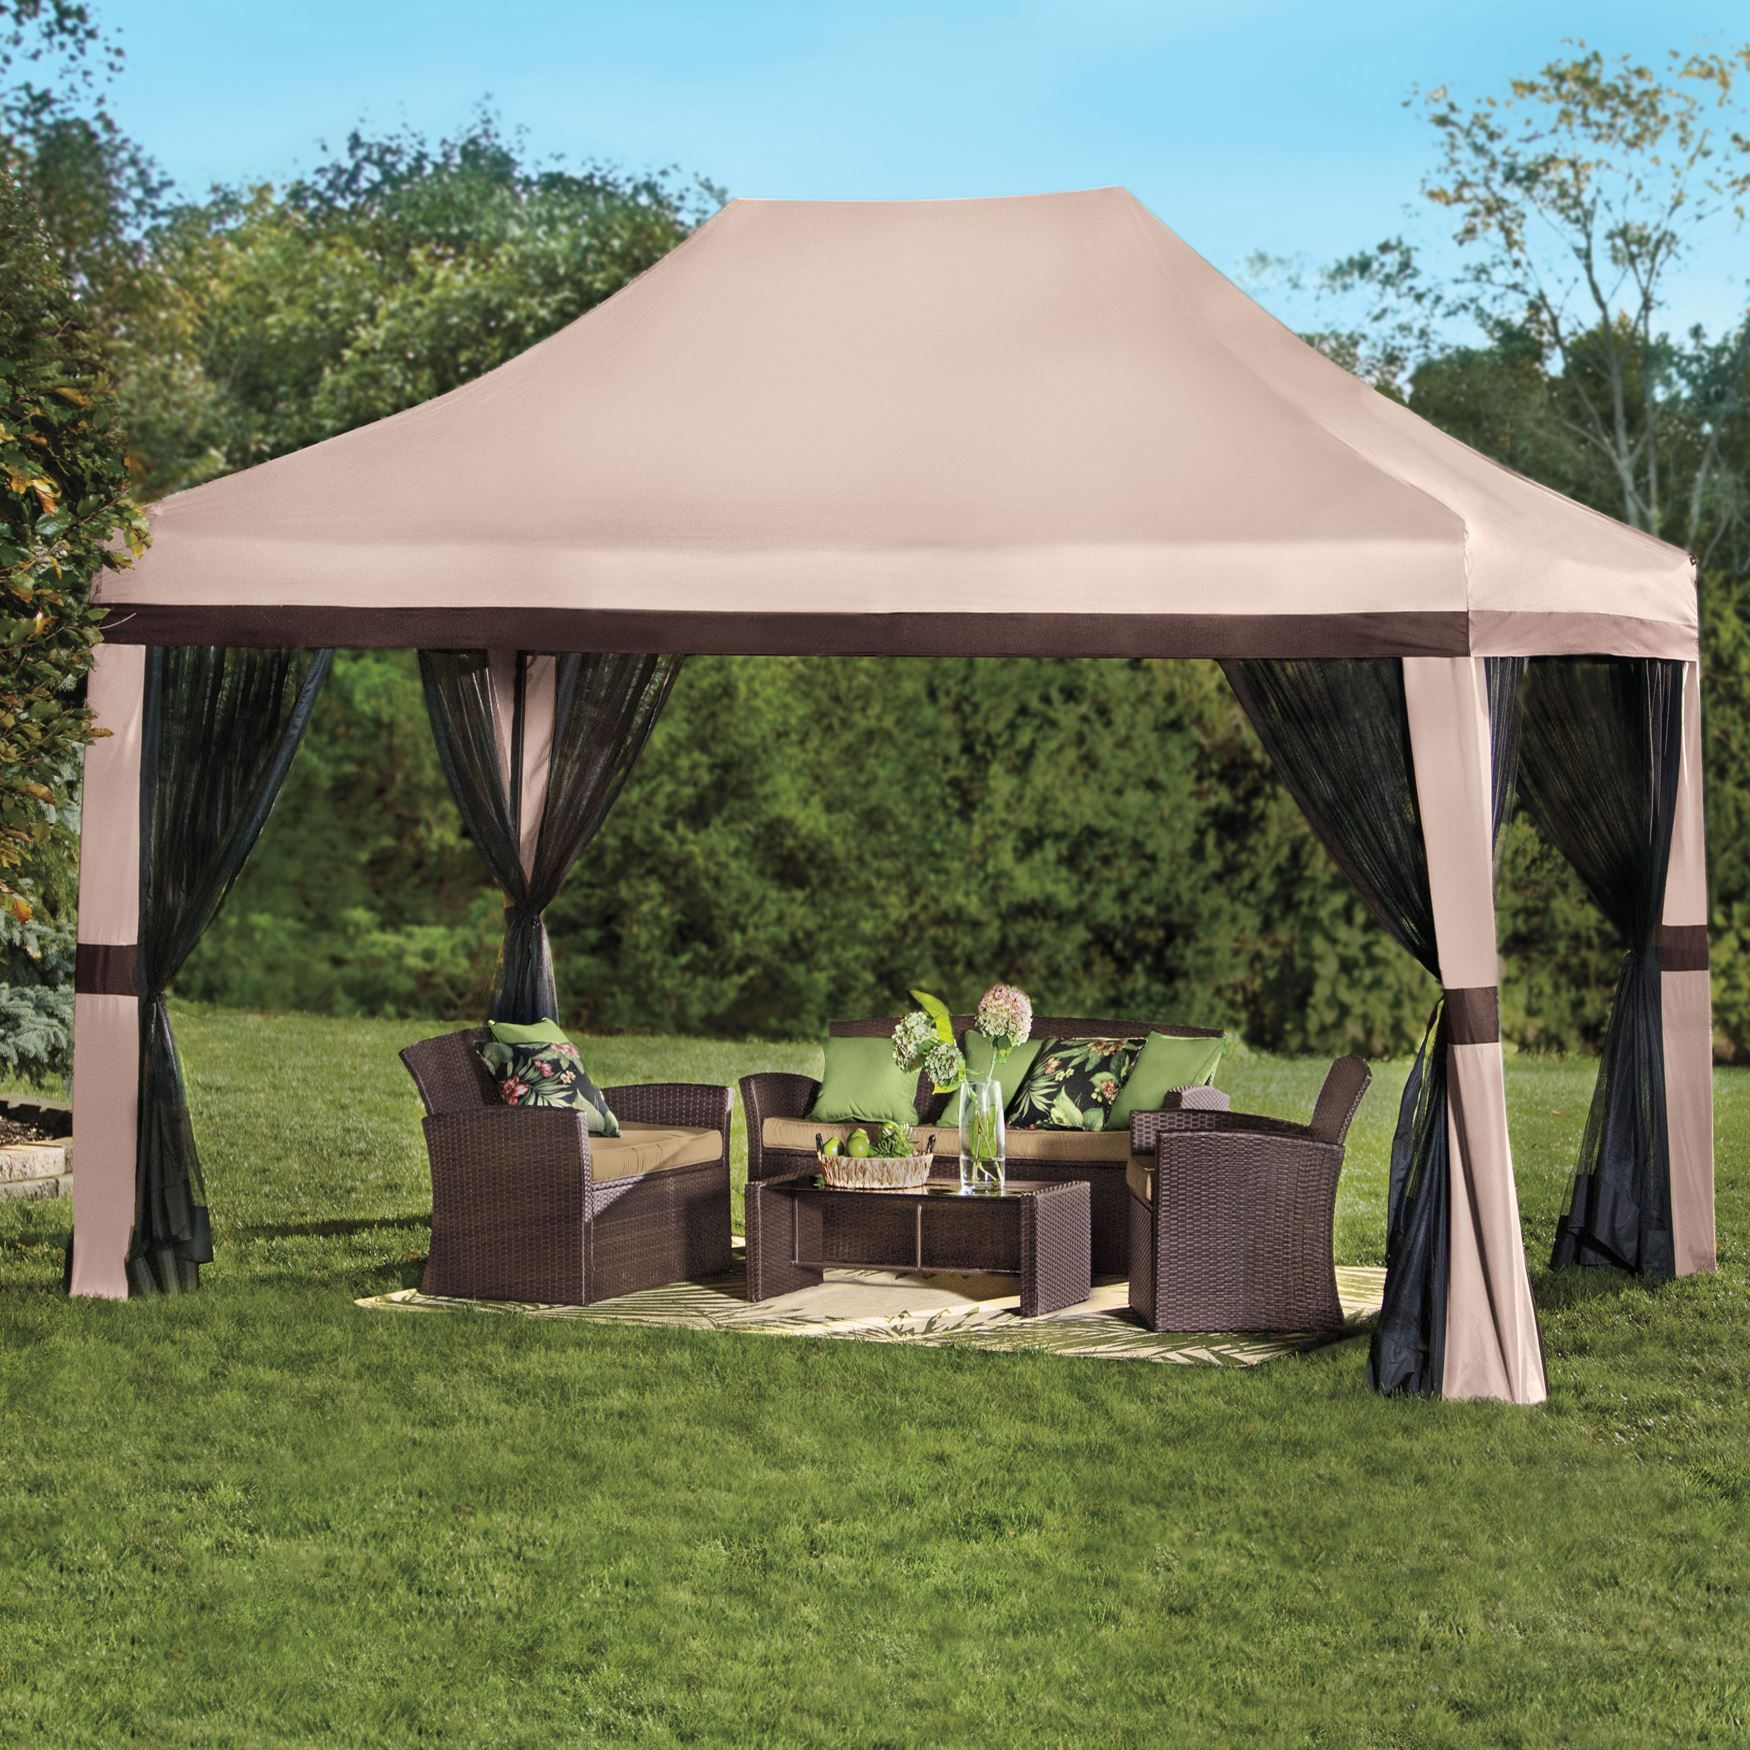 Oversized 10 Wx15 H Instant Pop Up Gazebo With Screen